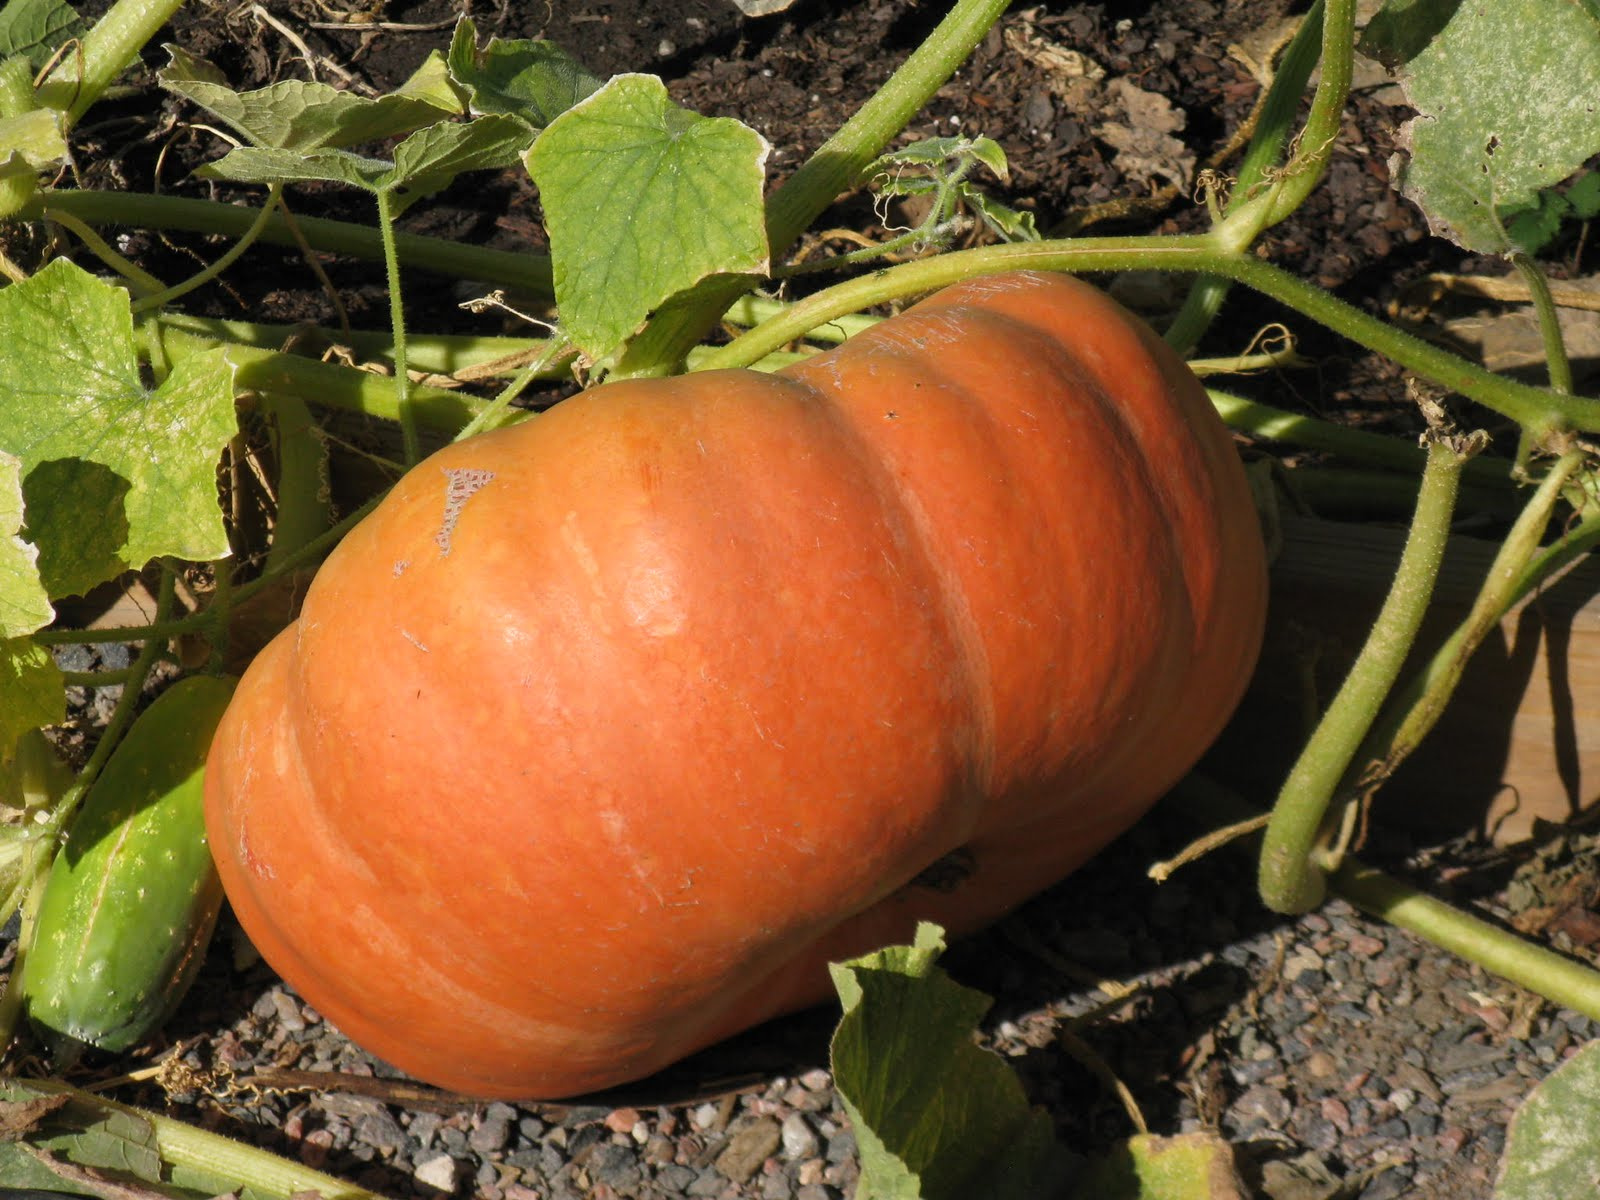 Cut The Stem With Hand Pruners To Preserve Health Solid Stems Provide An Effective Barrier Rot Use Care In Moving Pumpkins Avoid Nicks